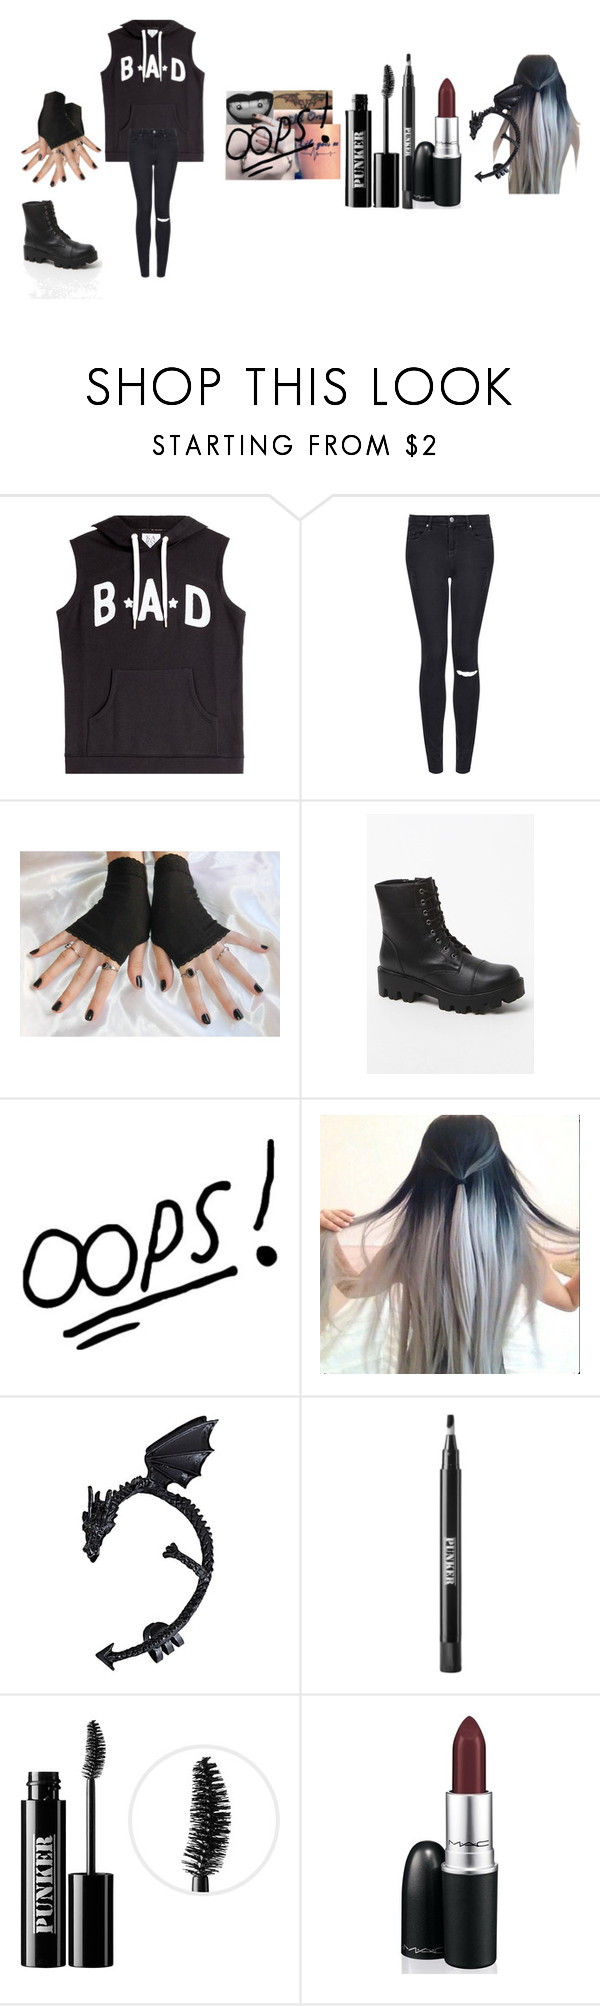 """""""Punk"""" by mc217008 ❤ liked on Polyvore featuring Zoe Karssen, Topshop, MIA and Ardency Inn"""